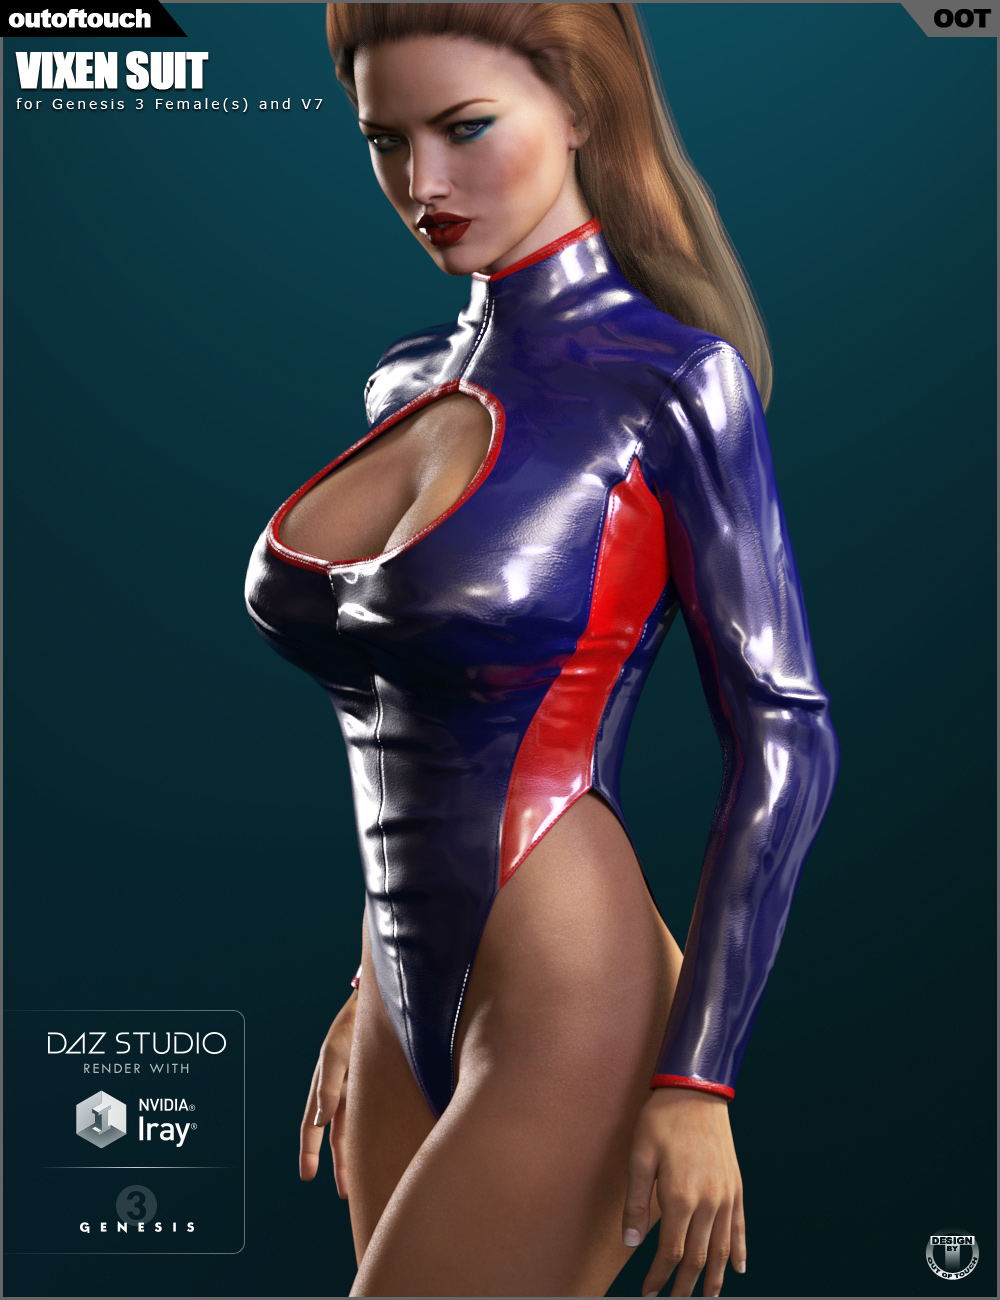 Vixen Suit for Genesis 3 Female(s)